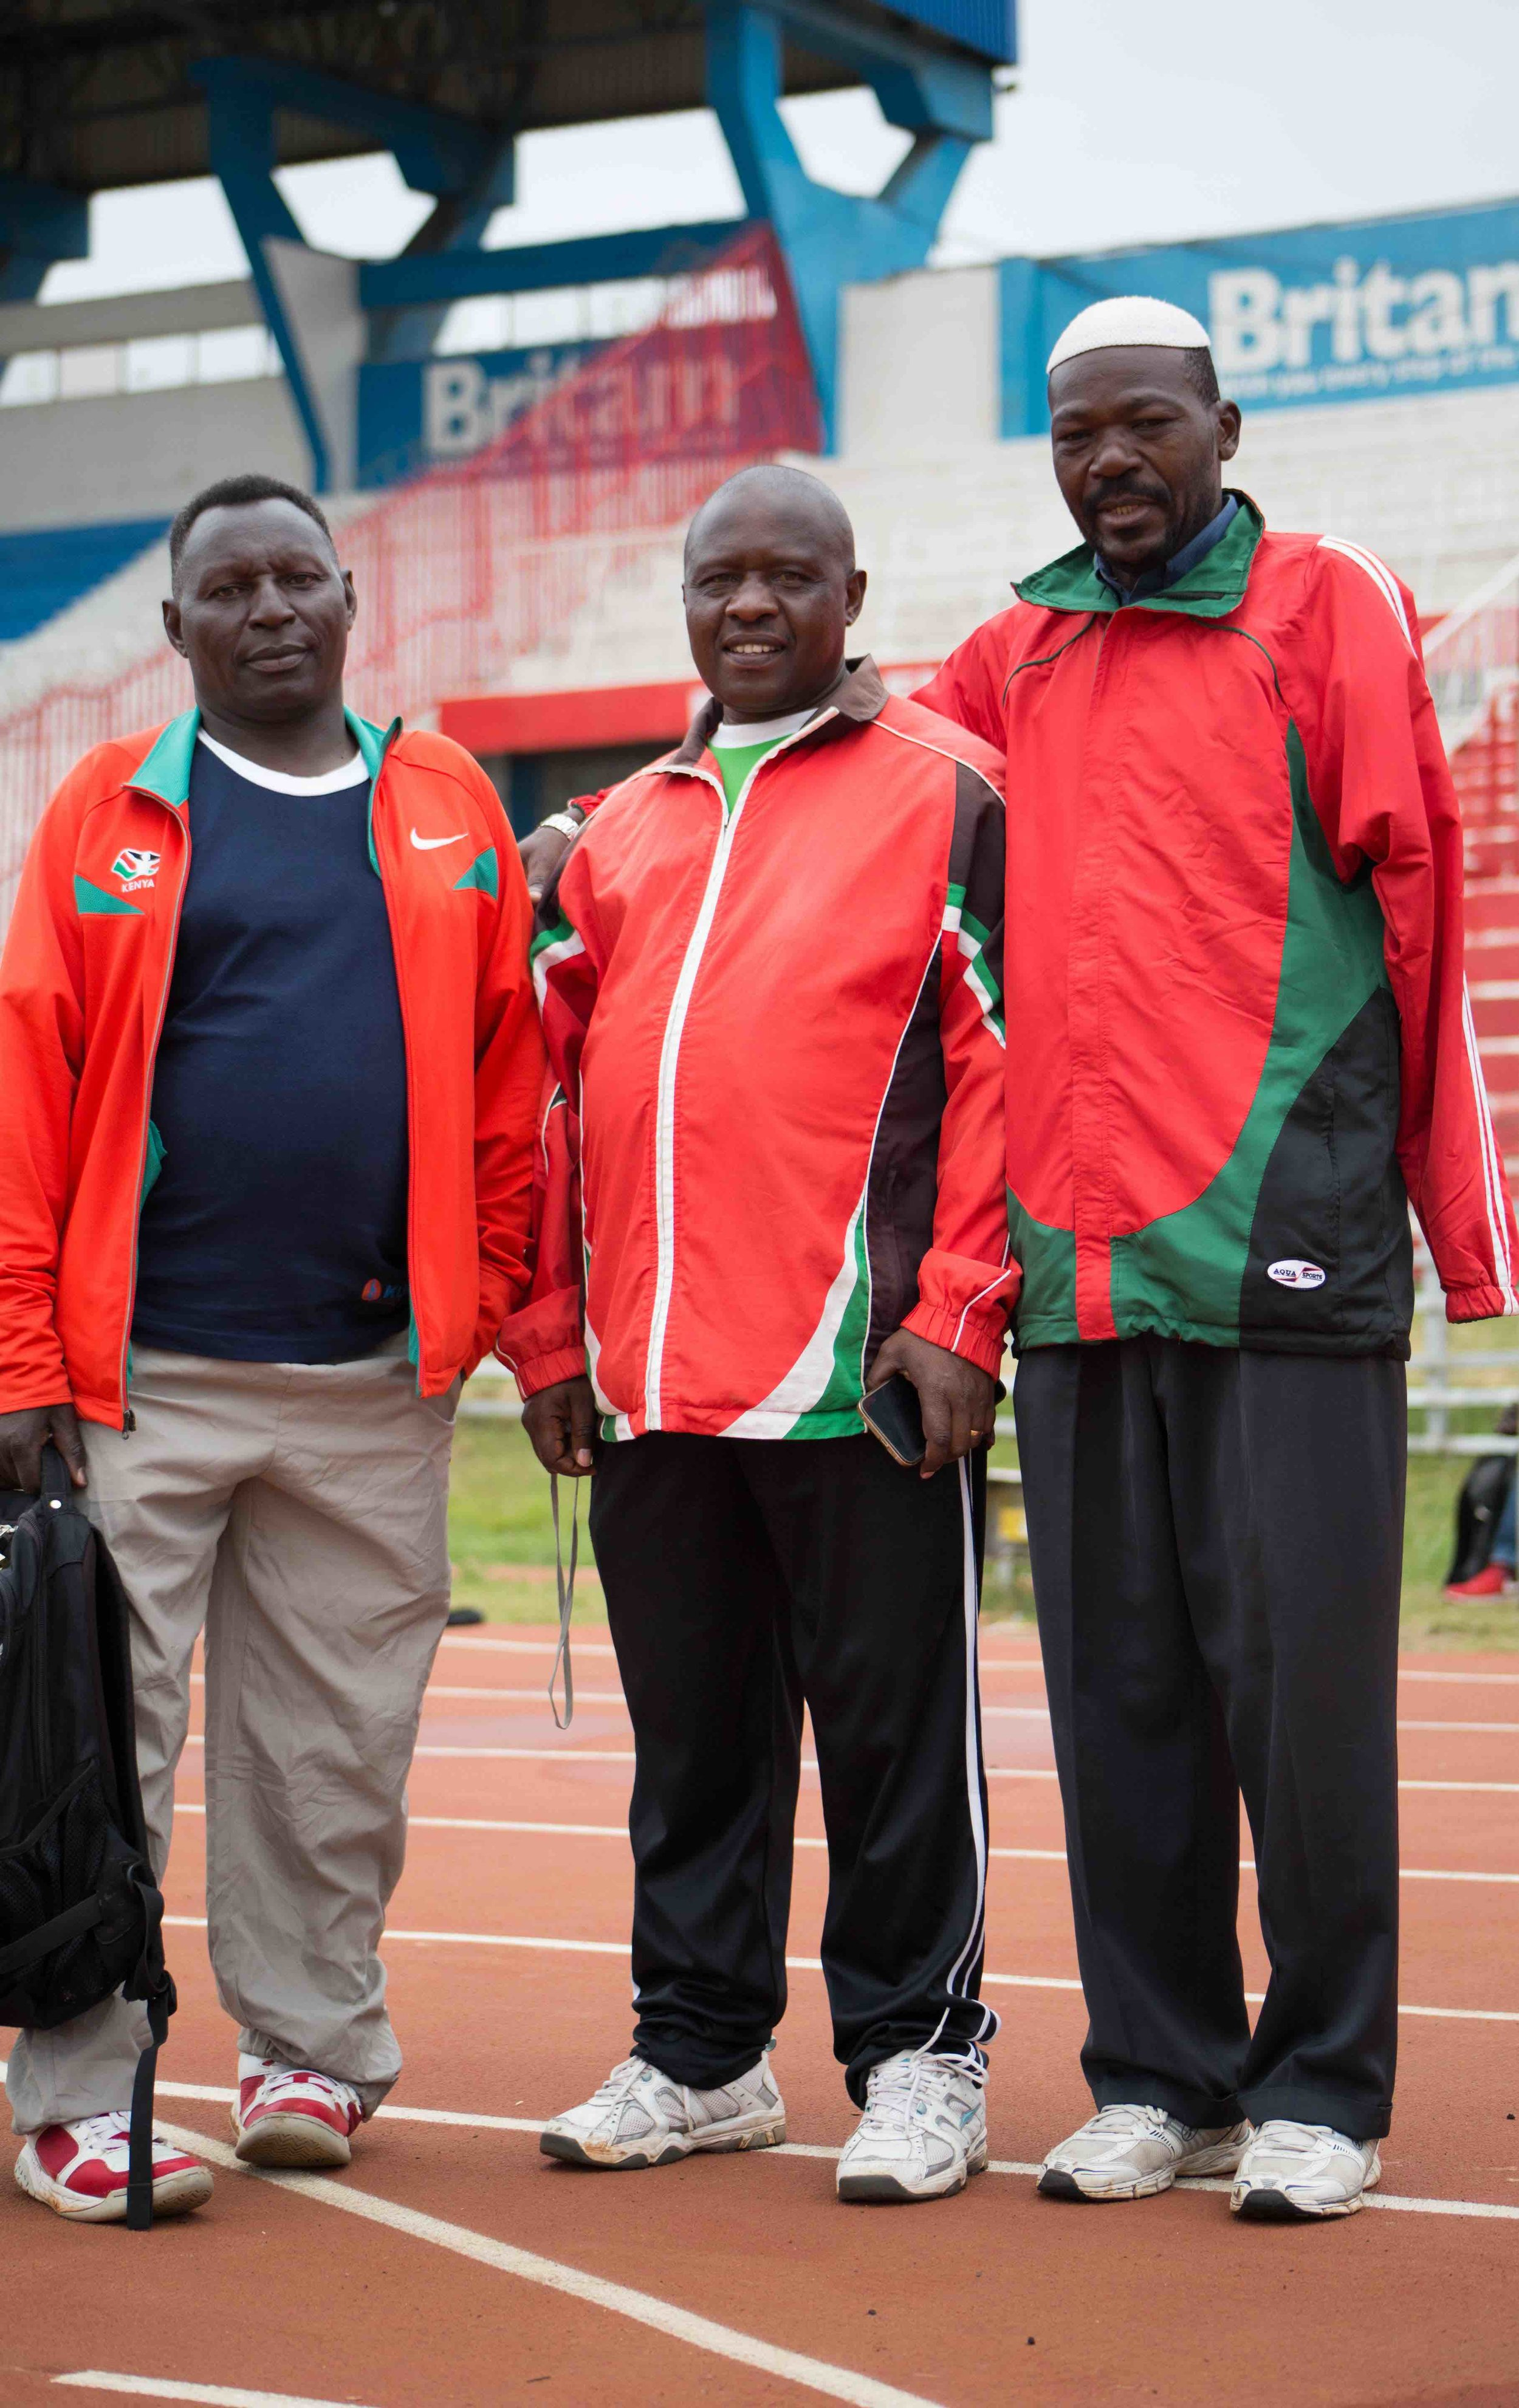 From Left to Right: Coach Stephen, Coach John Karuki, Coach Michael Omondi.  – Photo by Wes Parnell